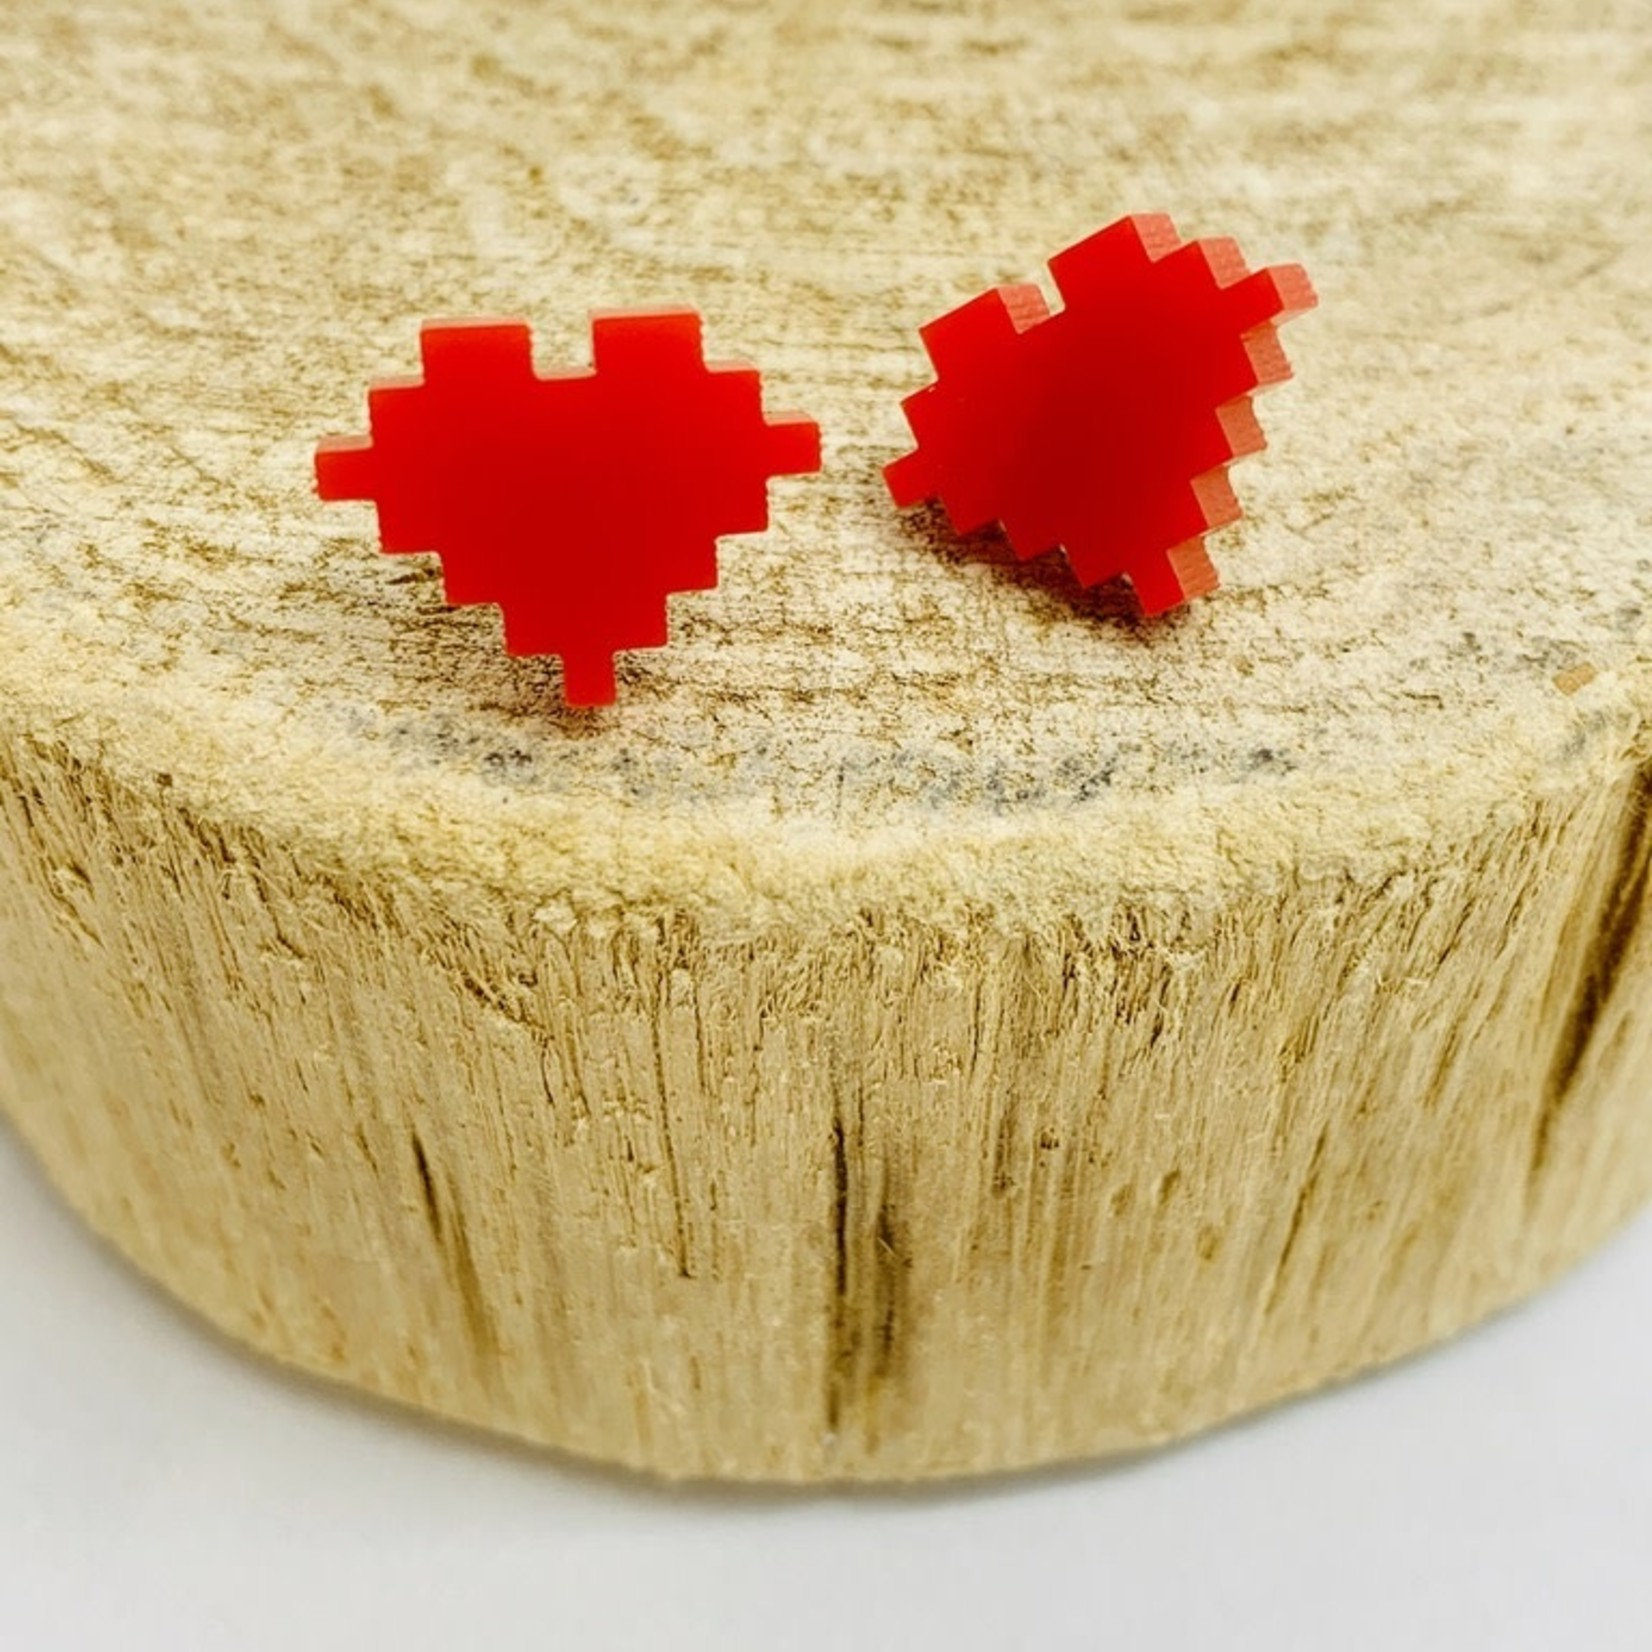 Handmade 8 Bit Heart Lasercut Wood Earrings on Sterling Silver Posts